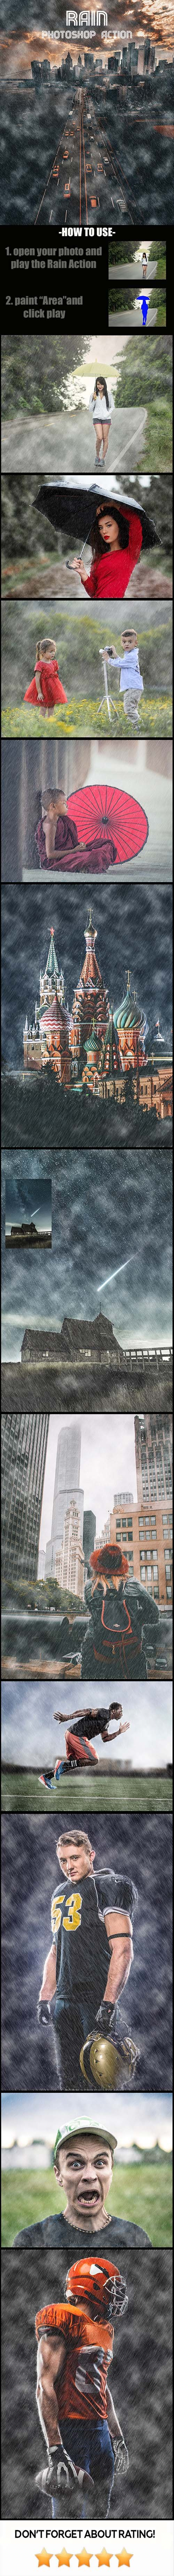 GraphicRiver - Rain Photoshop Action 21283393